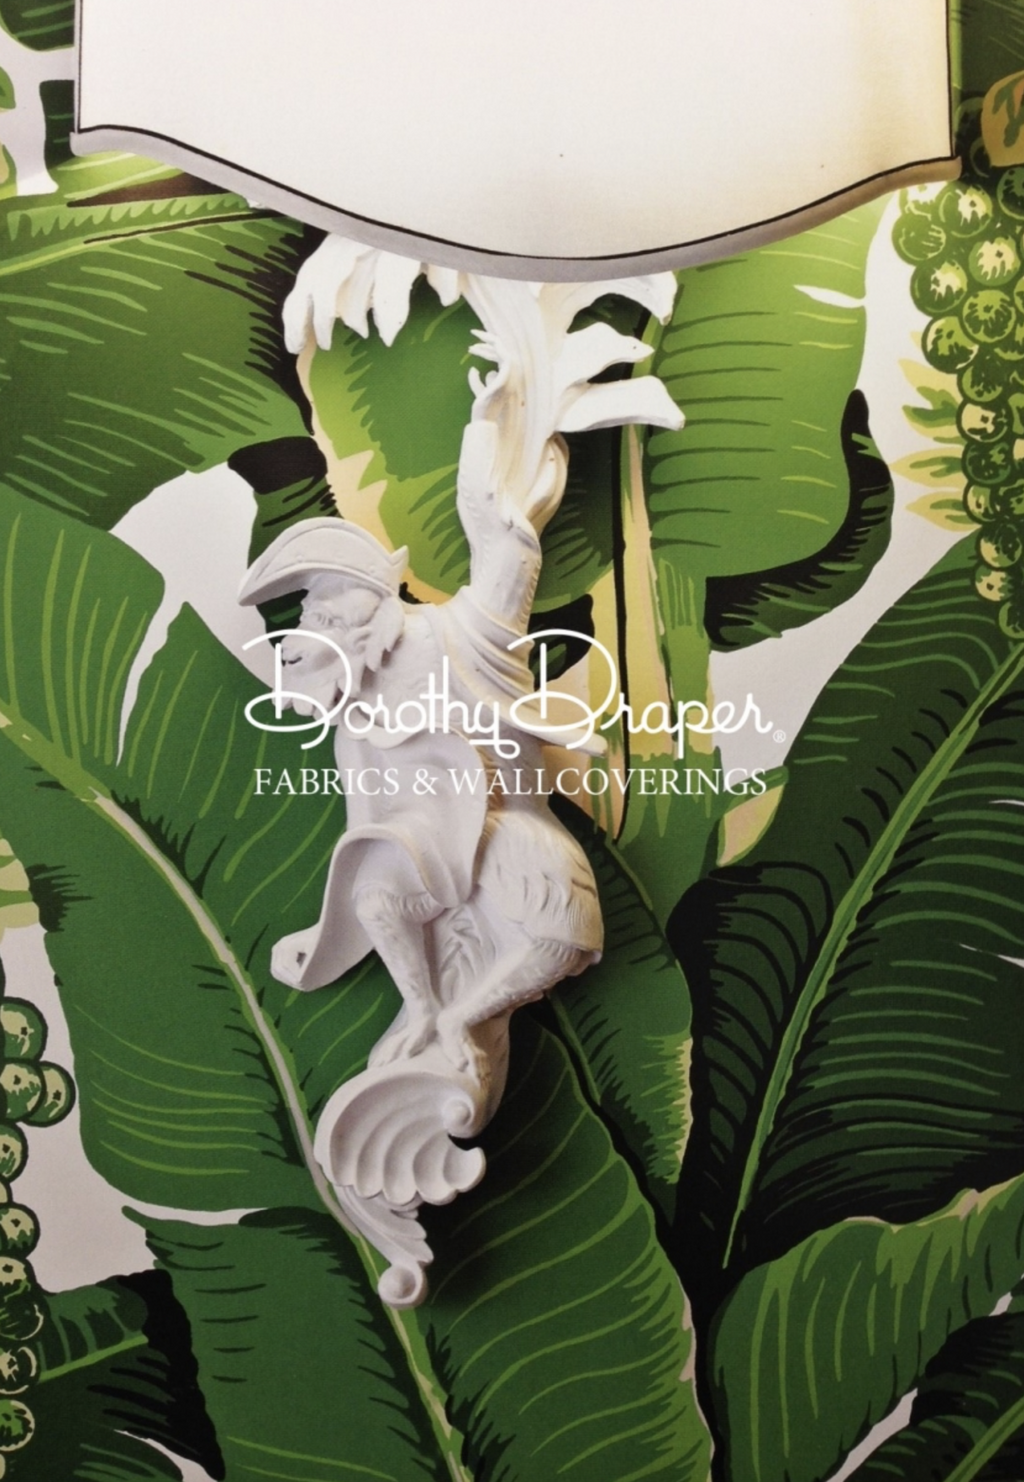 Brazilliance Banana Leaf Wallpaper - Dorothy Draper